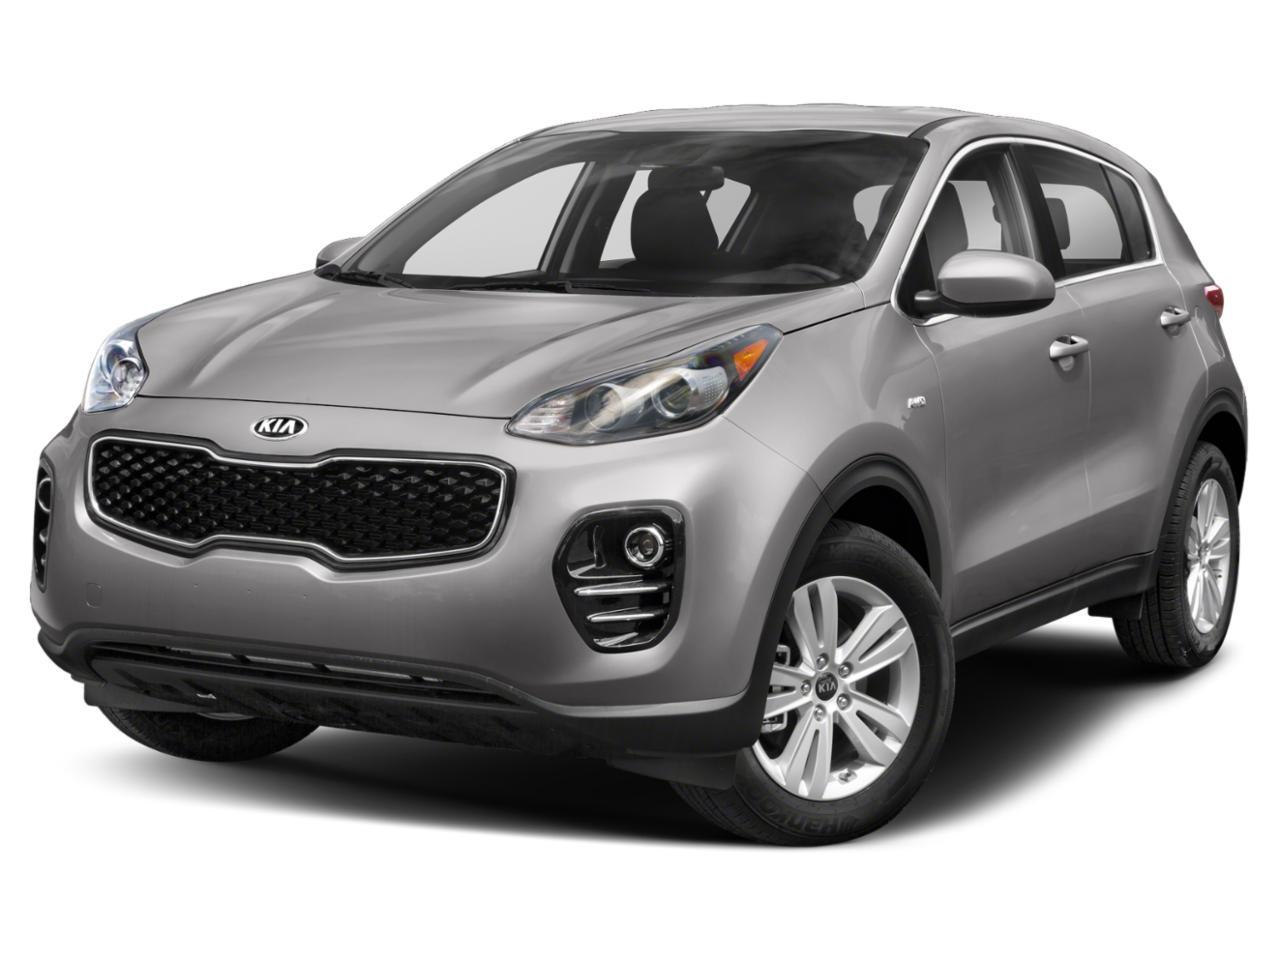 2019 Kia Sportage Vehicle Photo in Nashua, NH 03060